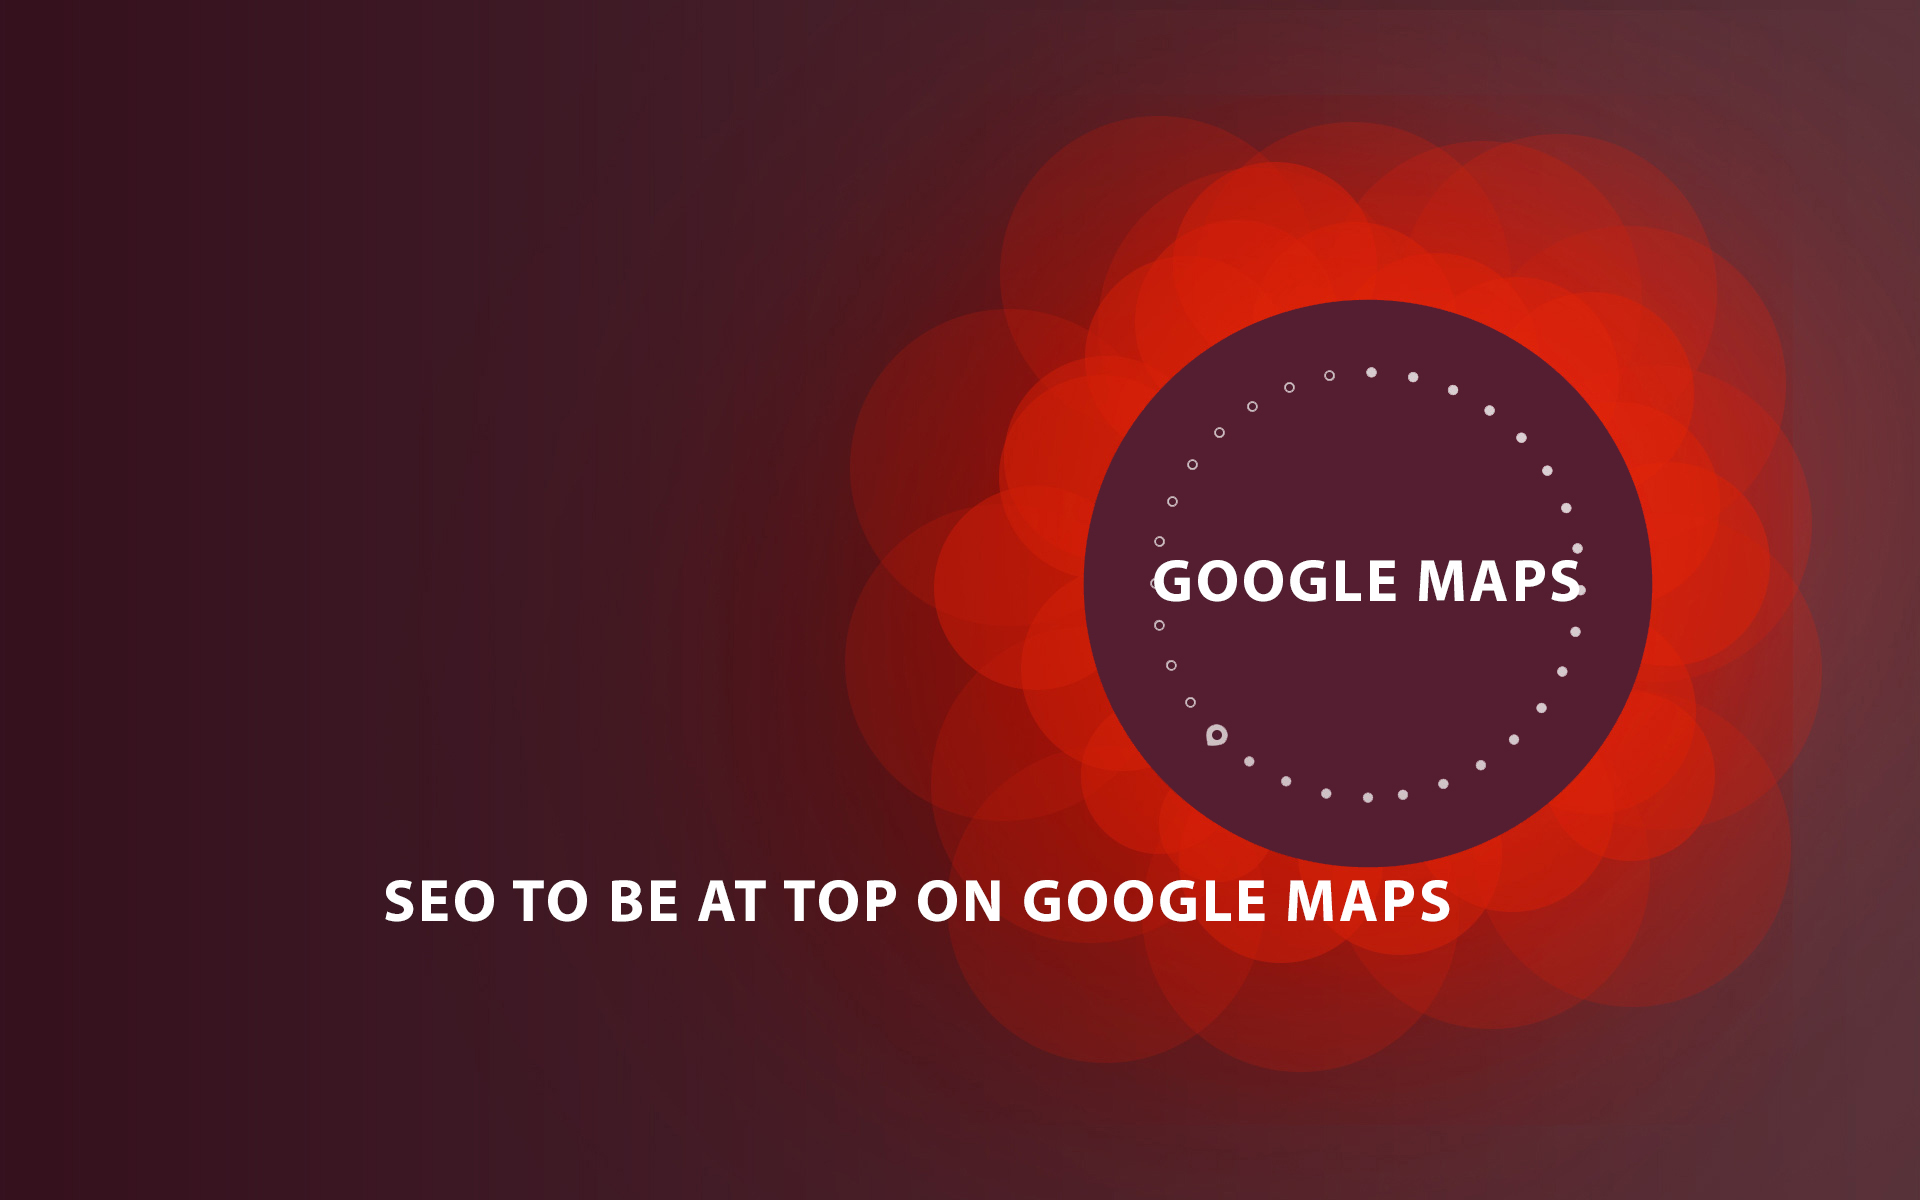 SEO to be at top on Google Maps